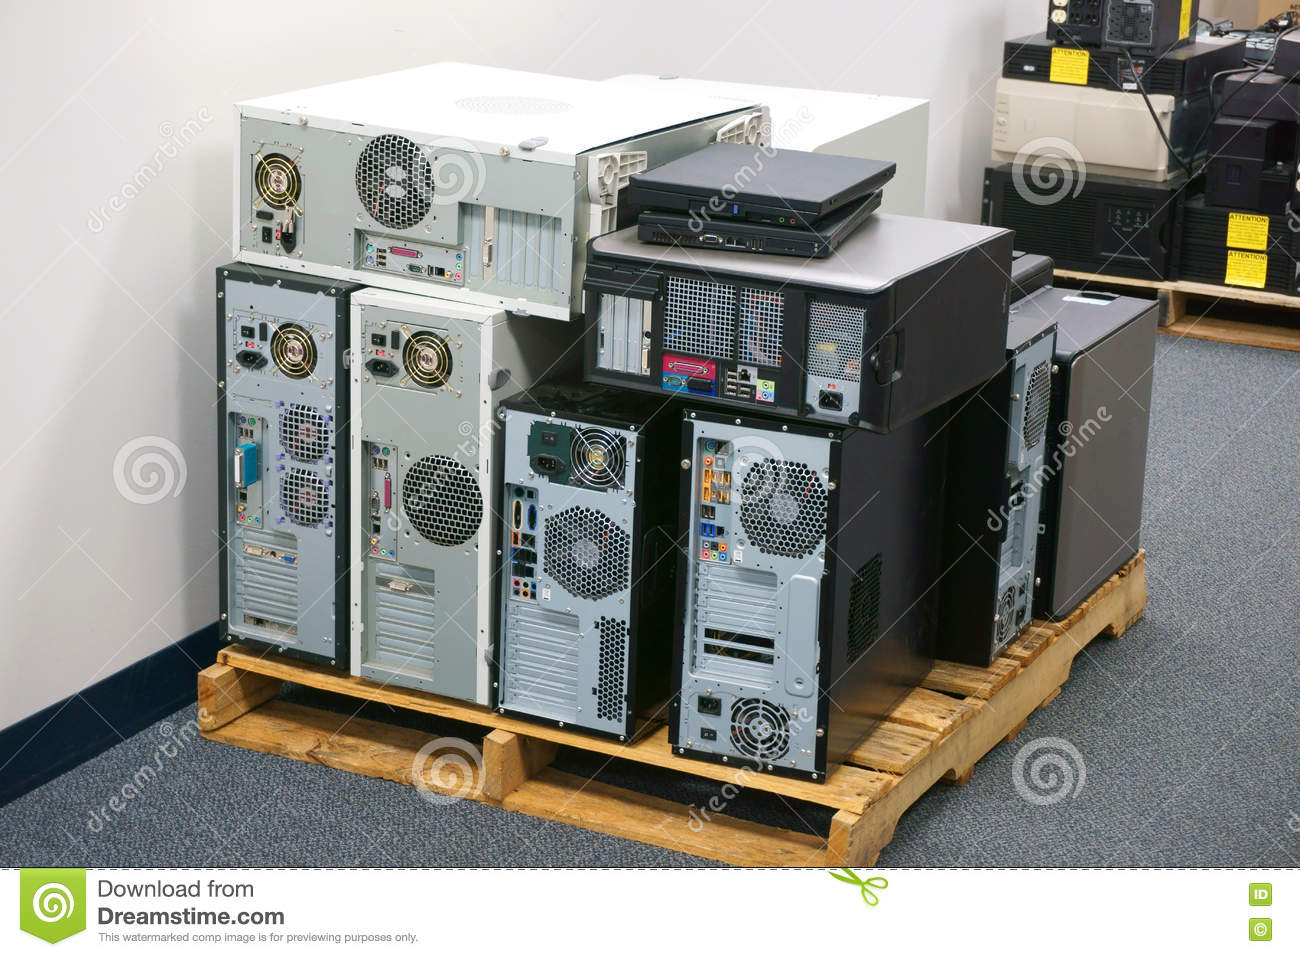 Stacking obsolete computers and workstations